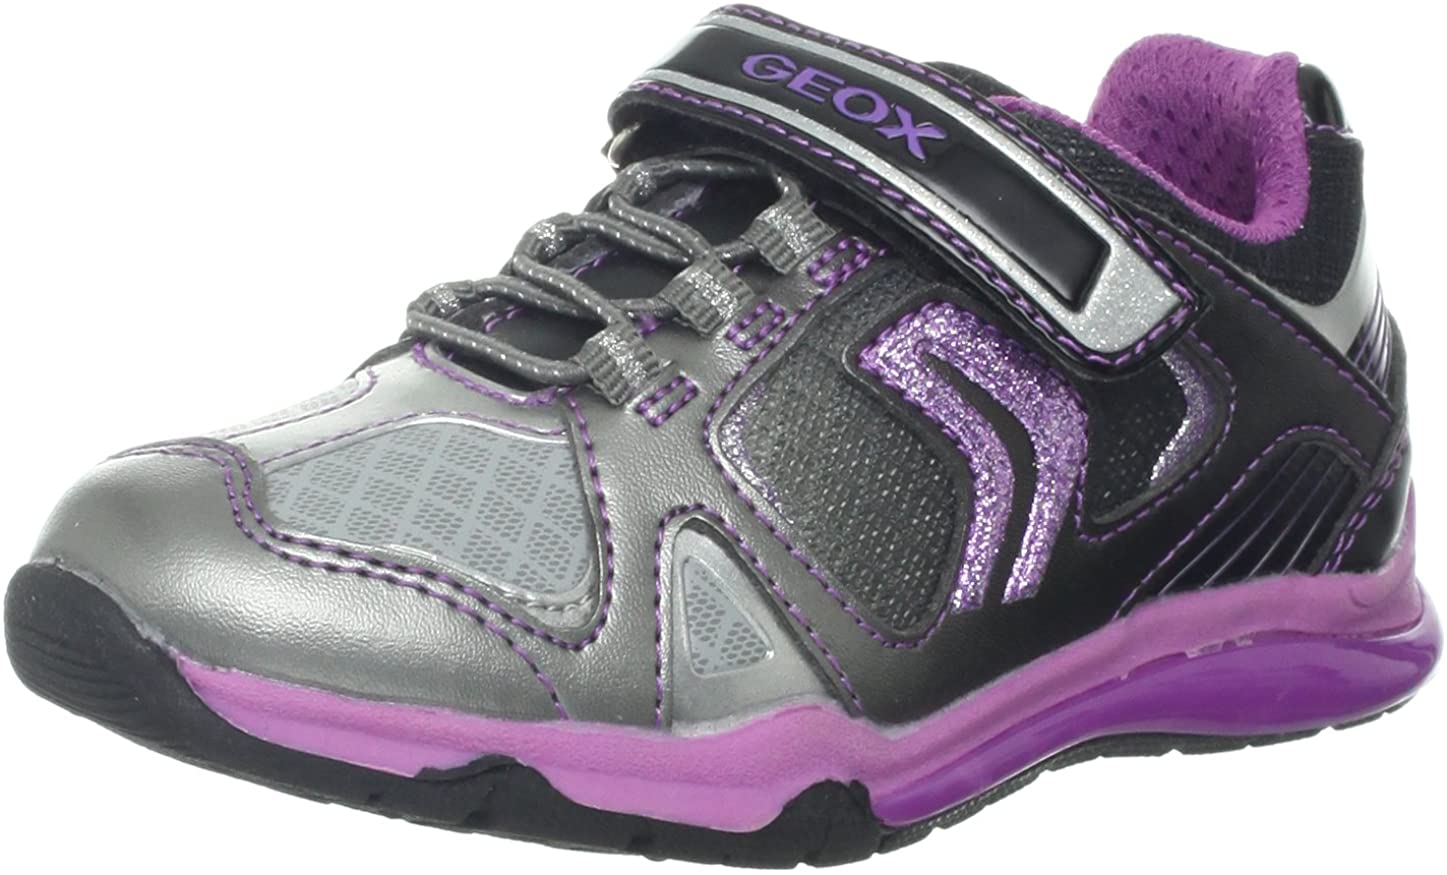 Geox Cmagica12 Lighted Sneaker (Toddler/Little Kid/Big Kid)